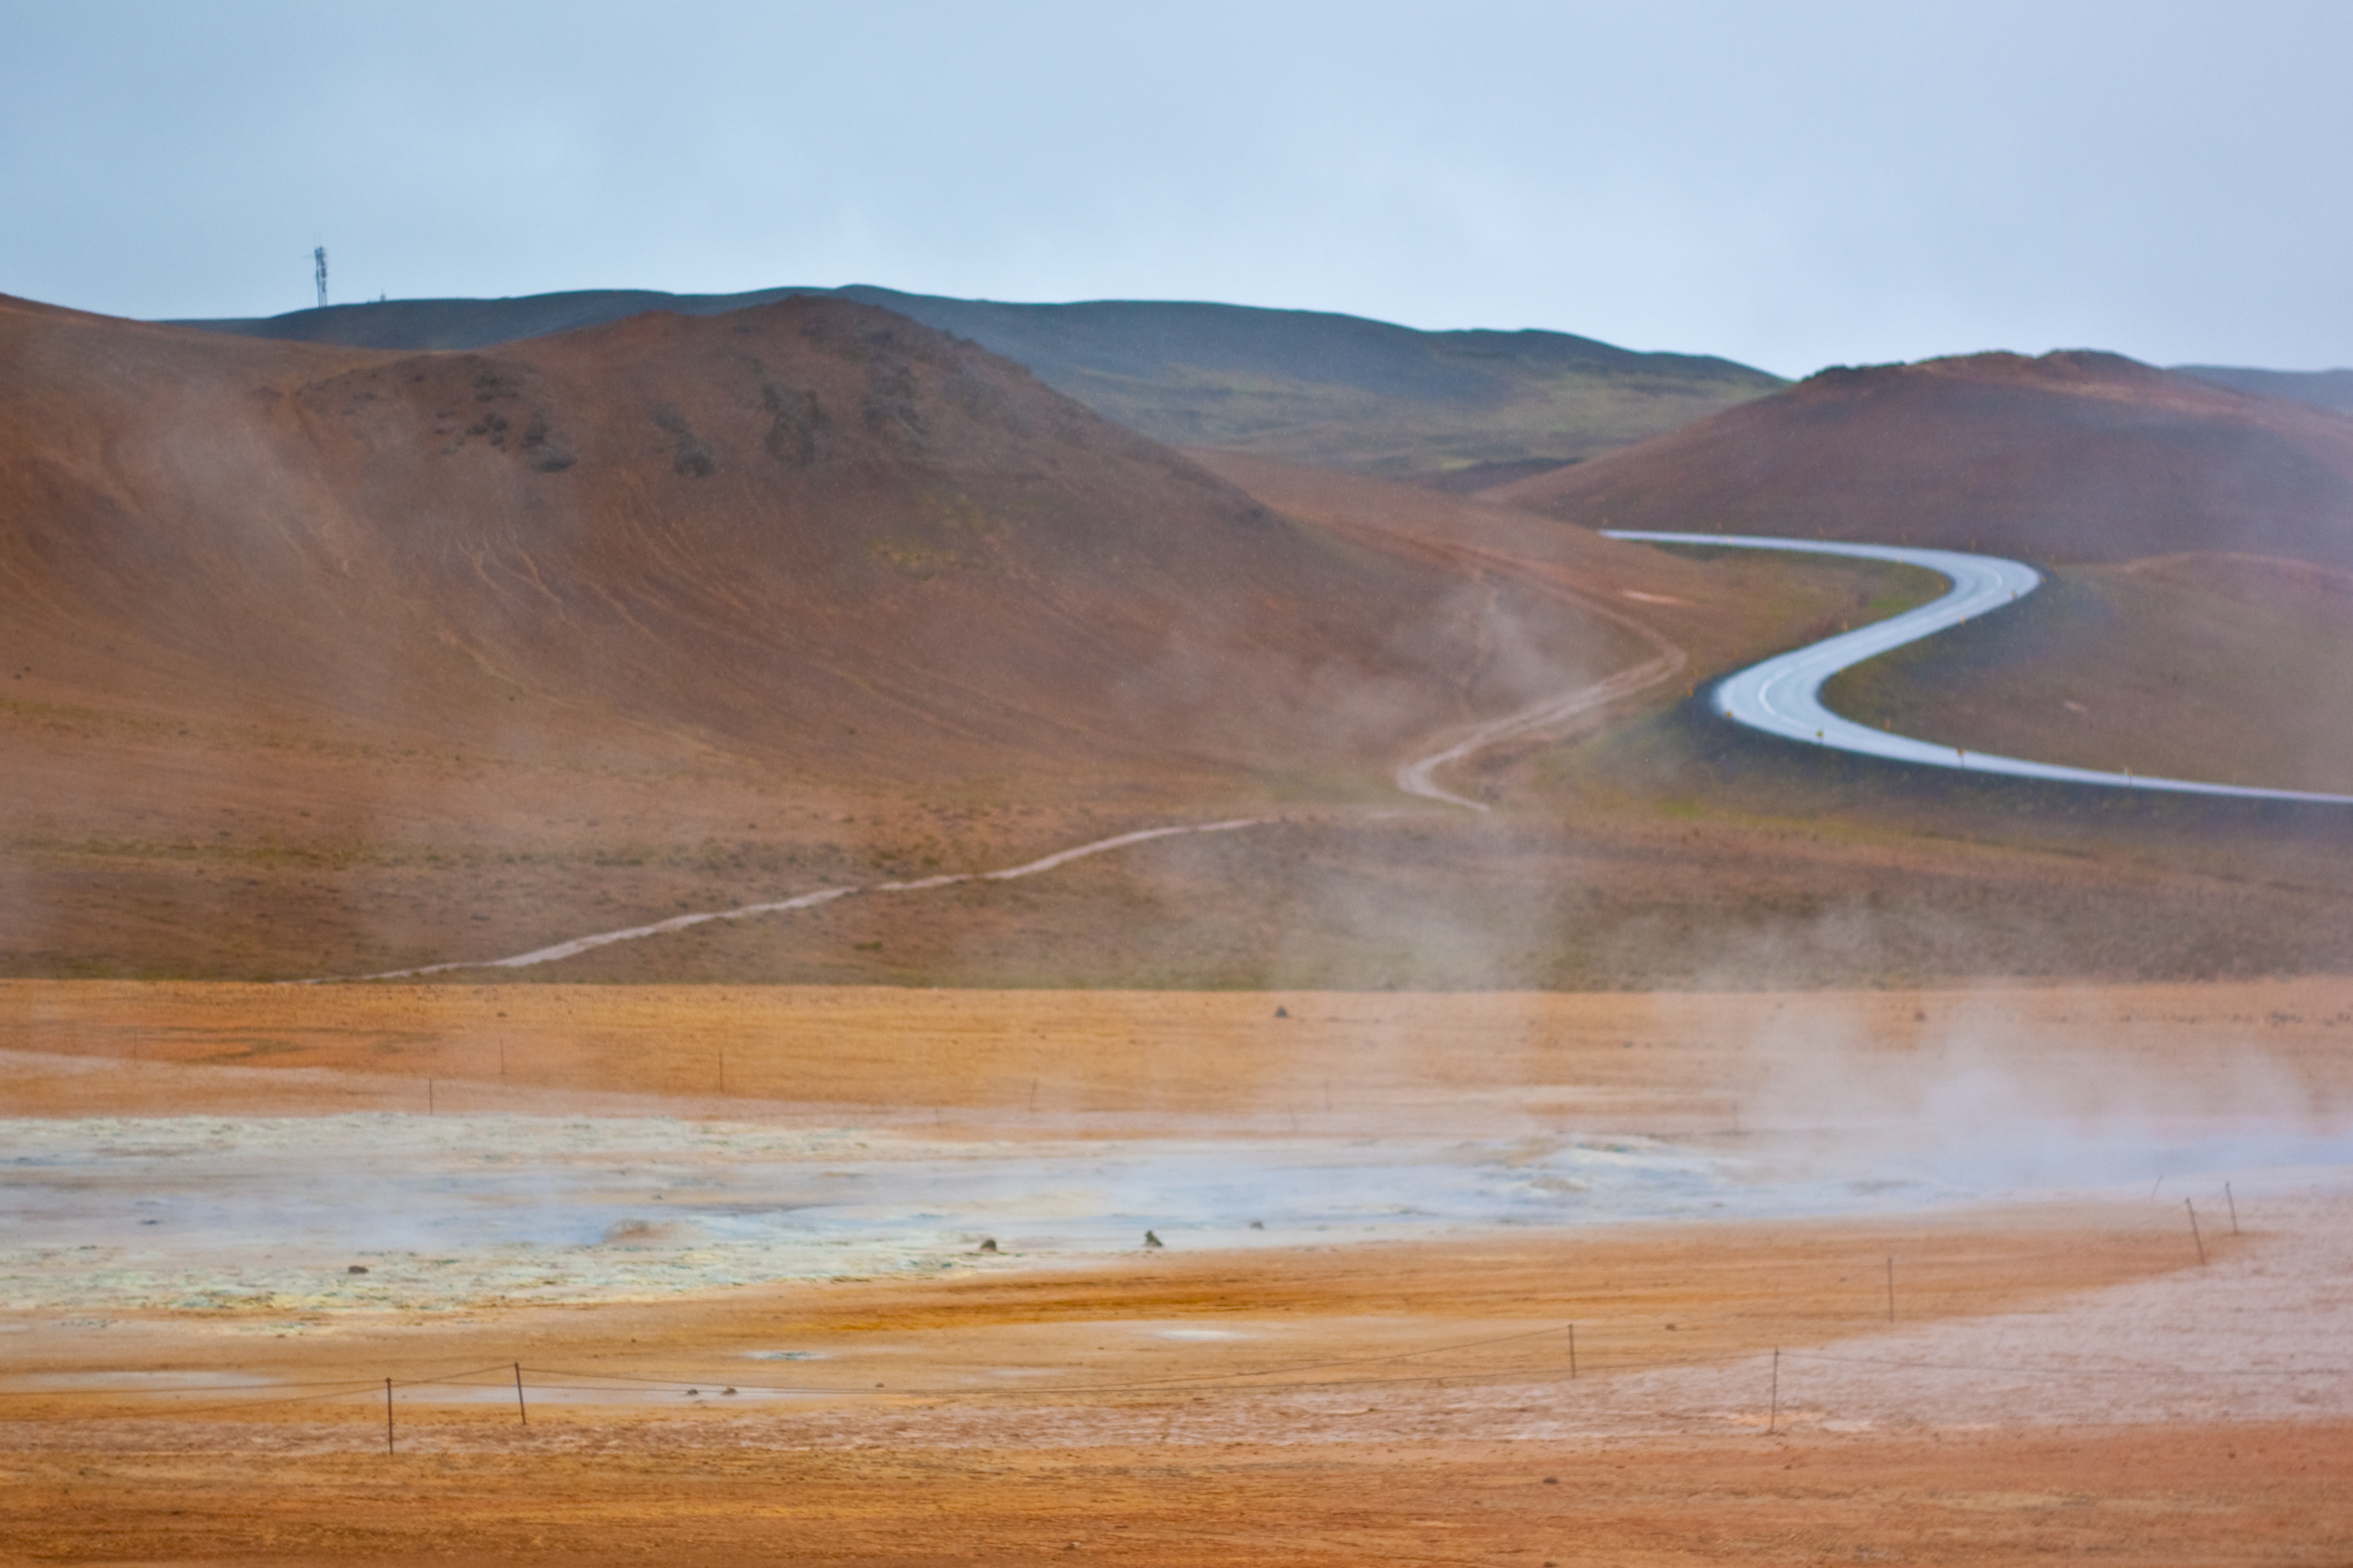 iceland-2015-115-of-173